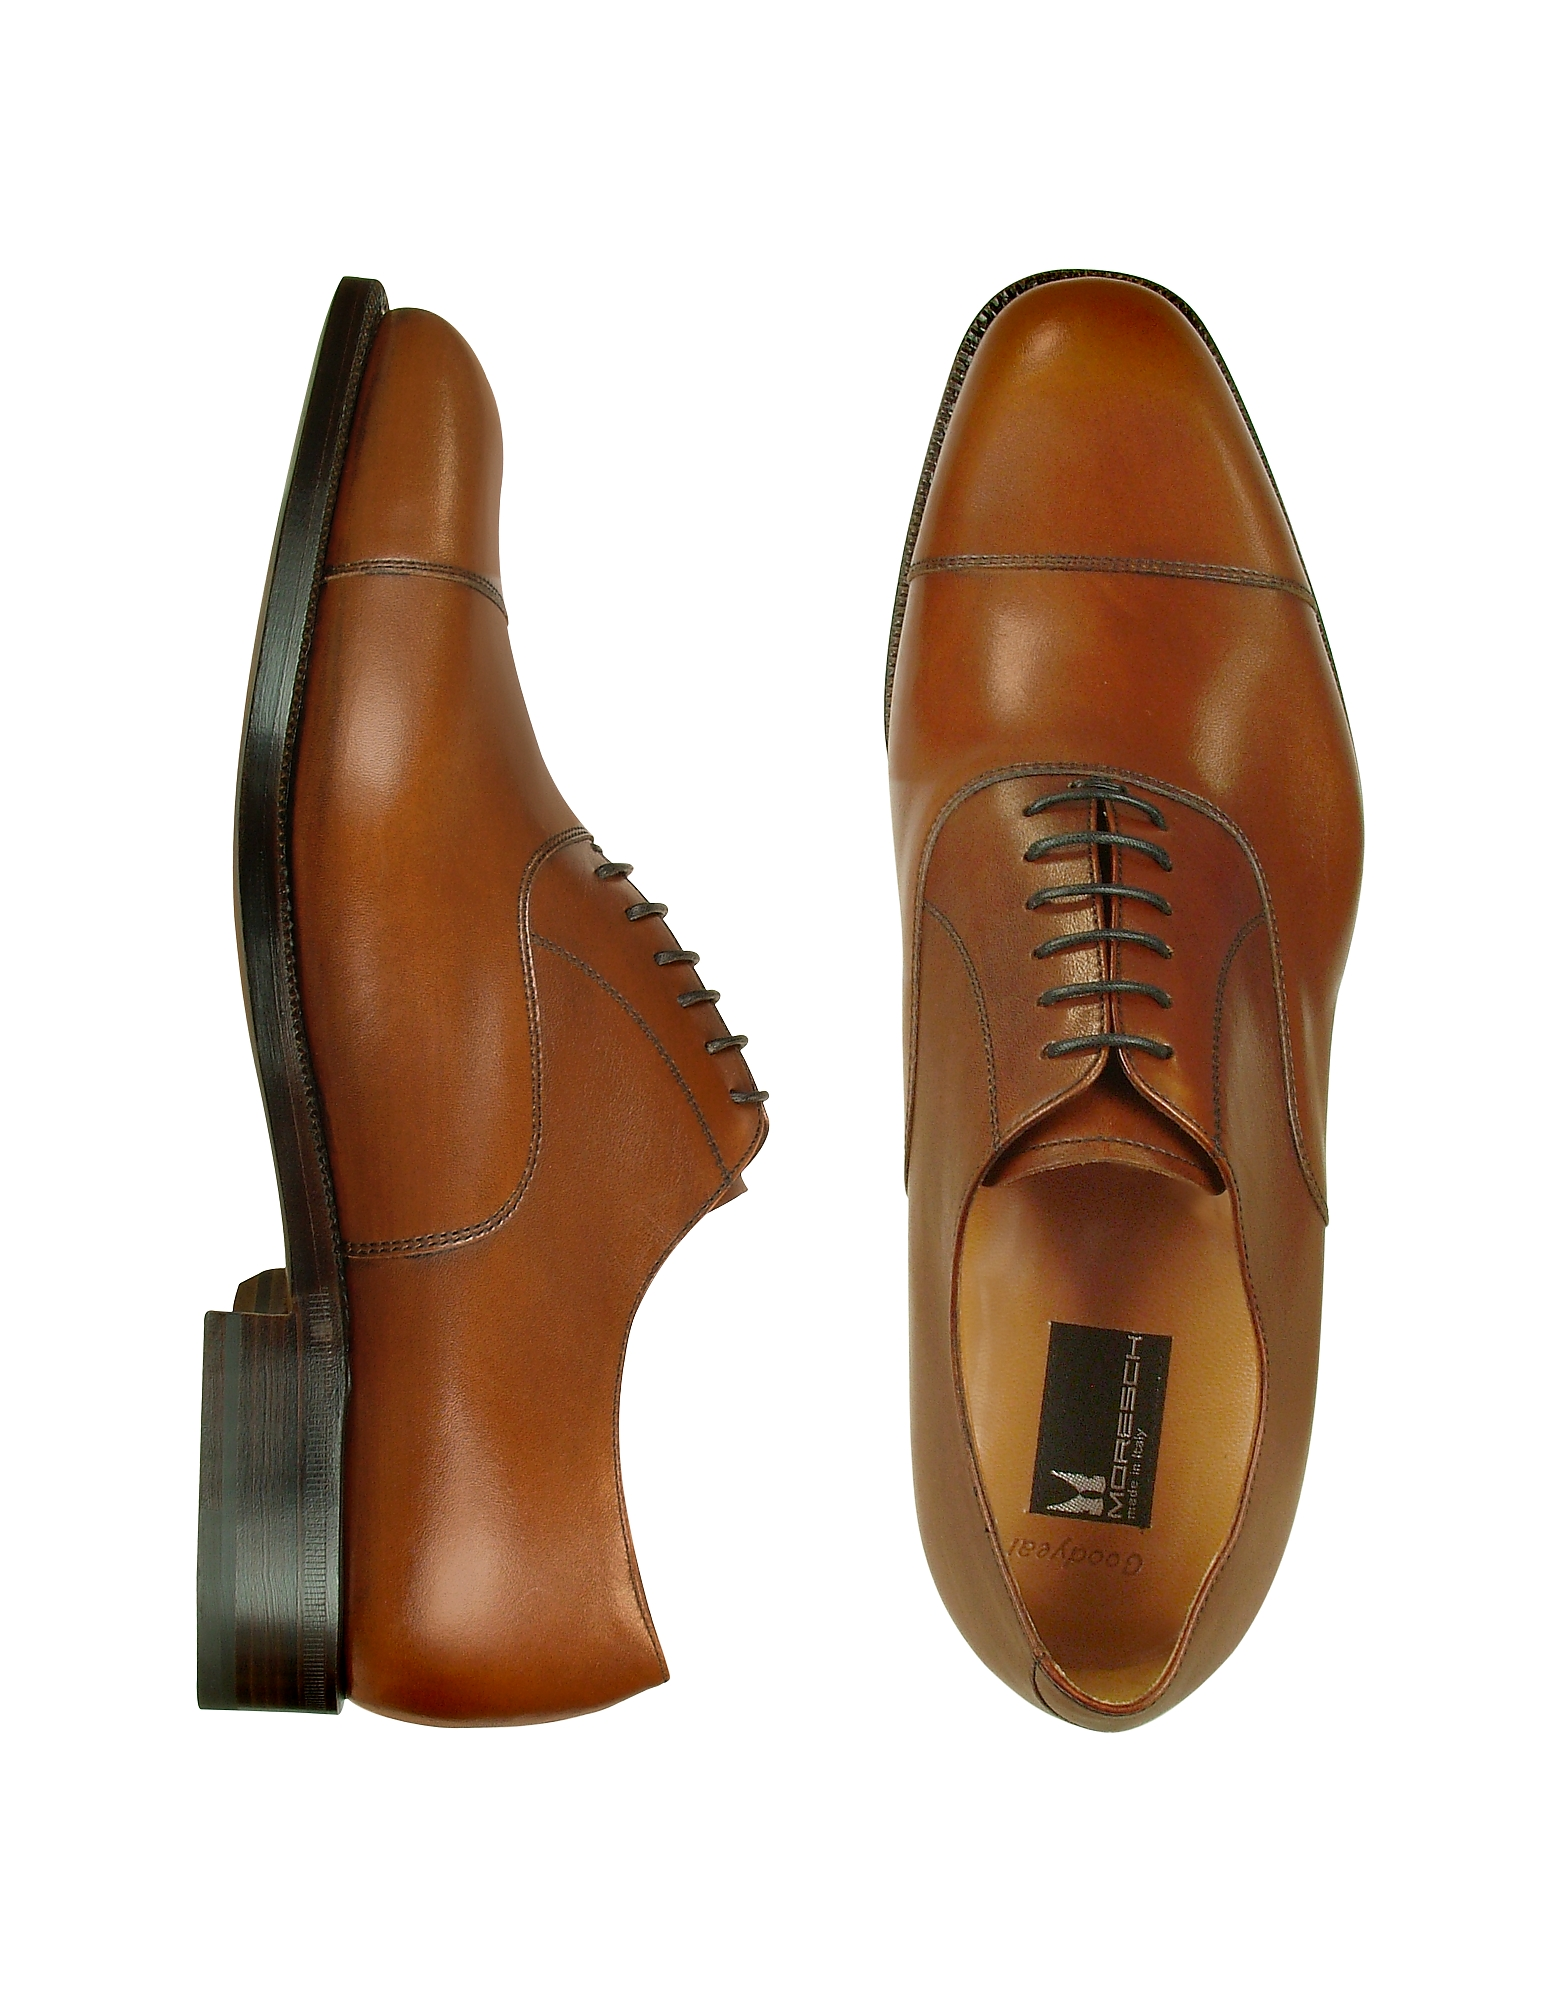 Moreschi Shoes, Londra - Tan Calfskin Cap Toe Oxford Shoes